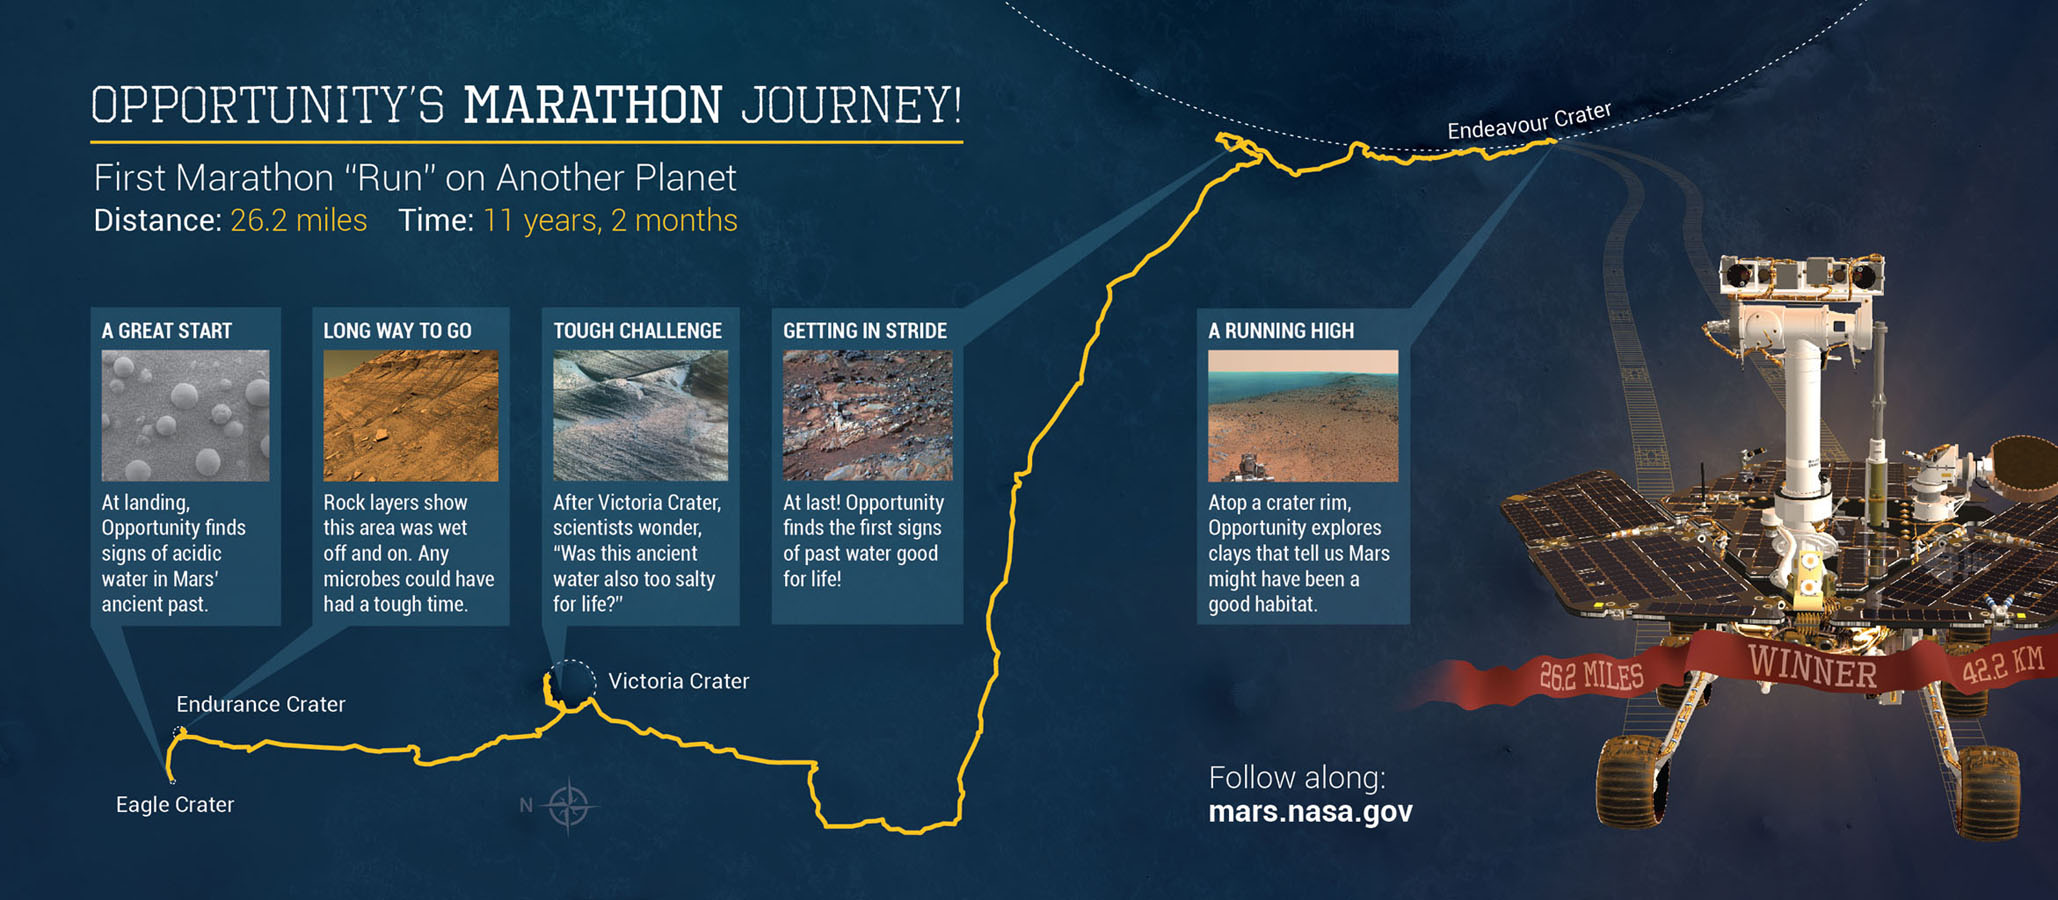 Space Images | Opportunity's Marathon Journey